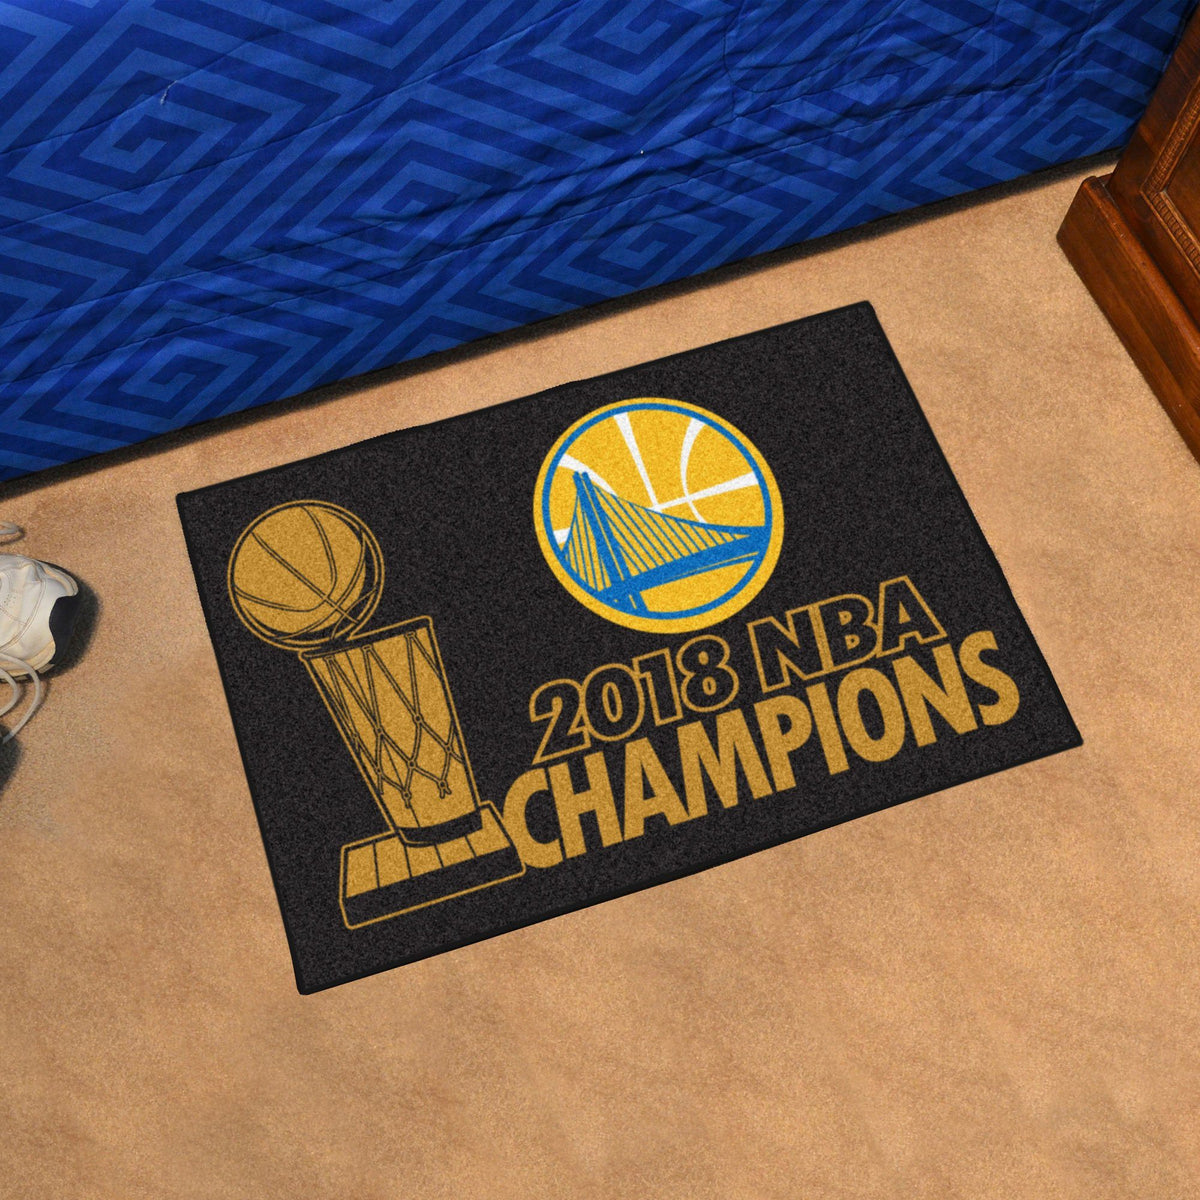 NBA - Championship Starter Mat NBA Mats, Rectangular Mats, Championship Starter Mat, NBA, Home Fan Mats Golden State Warriors